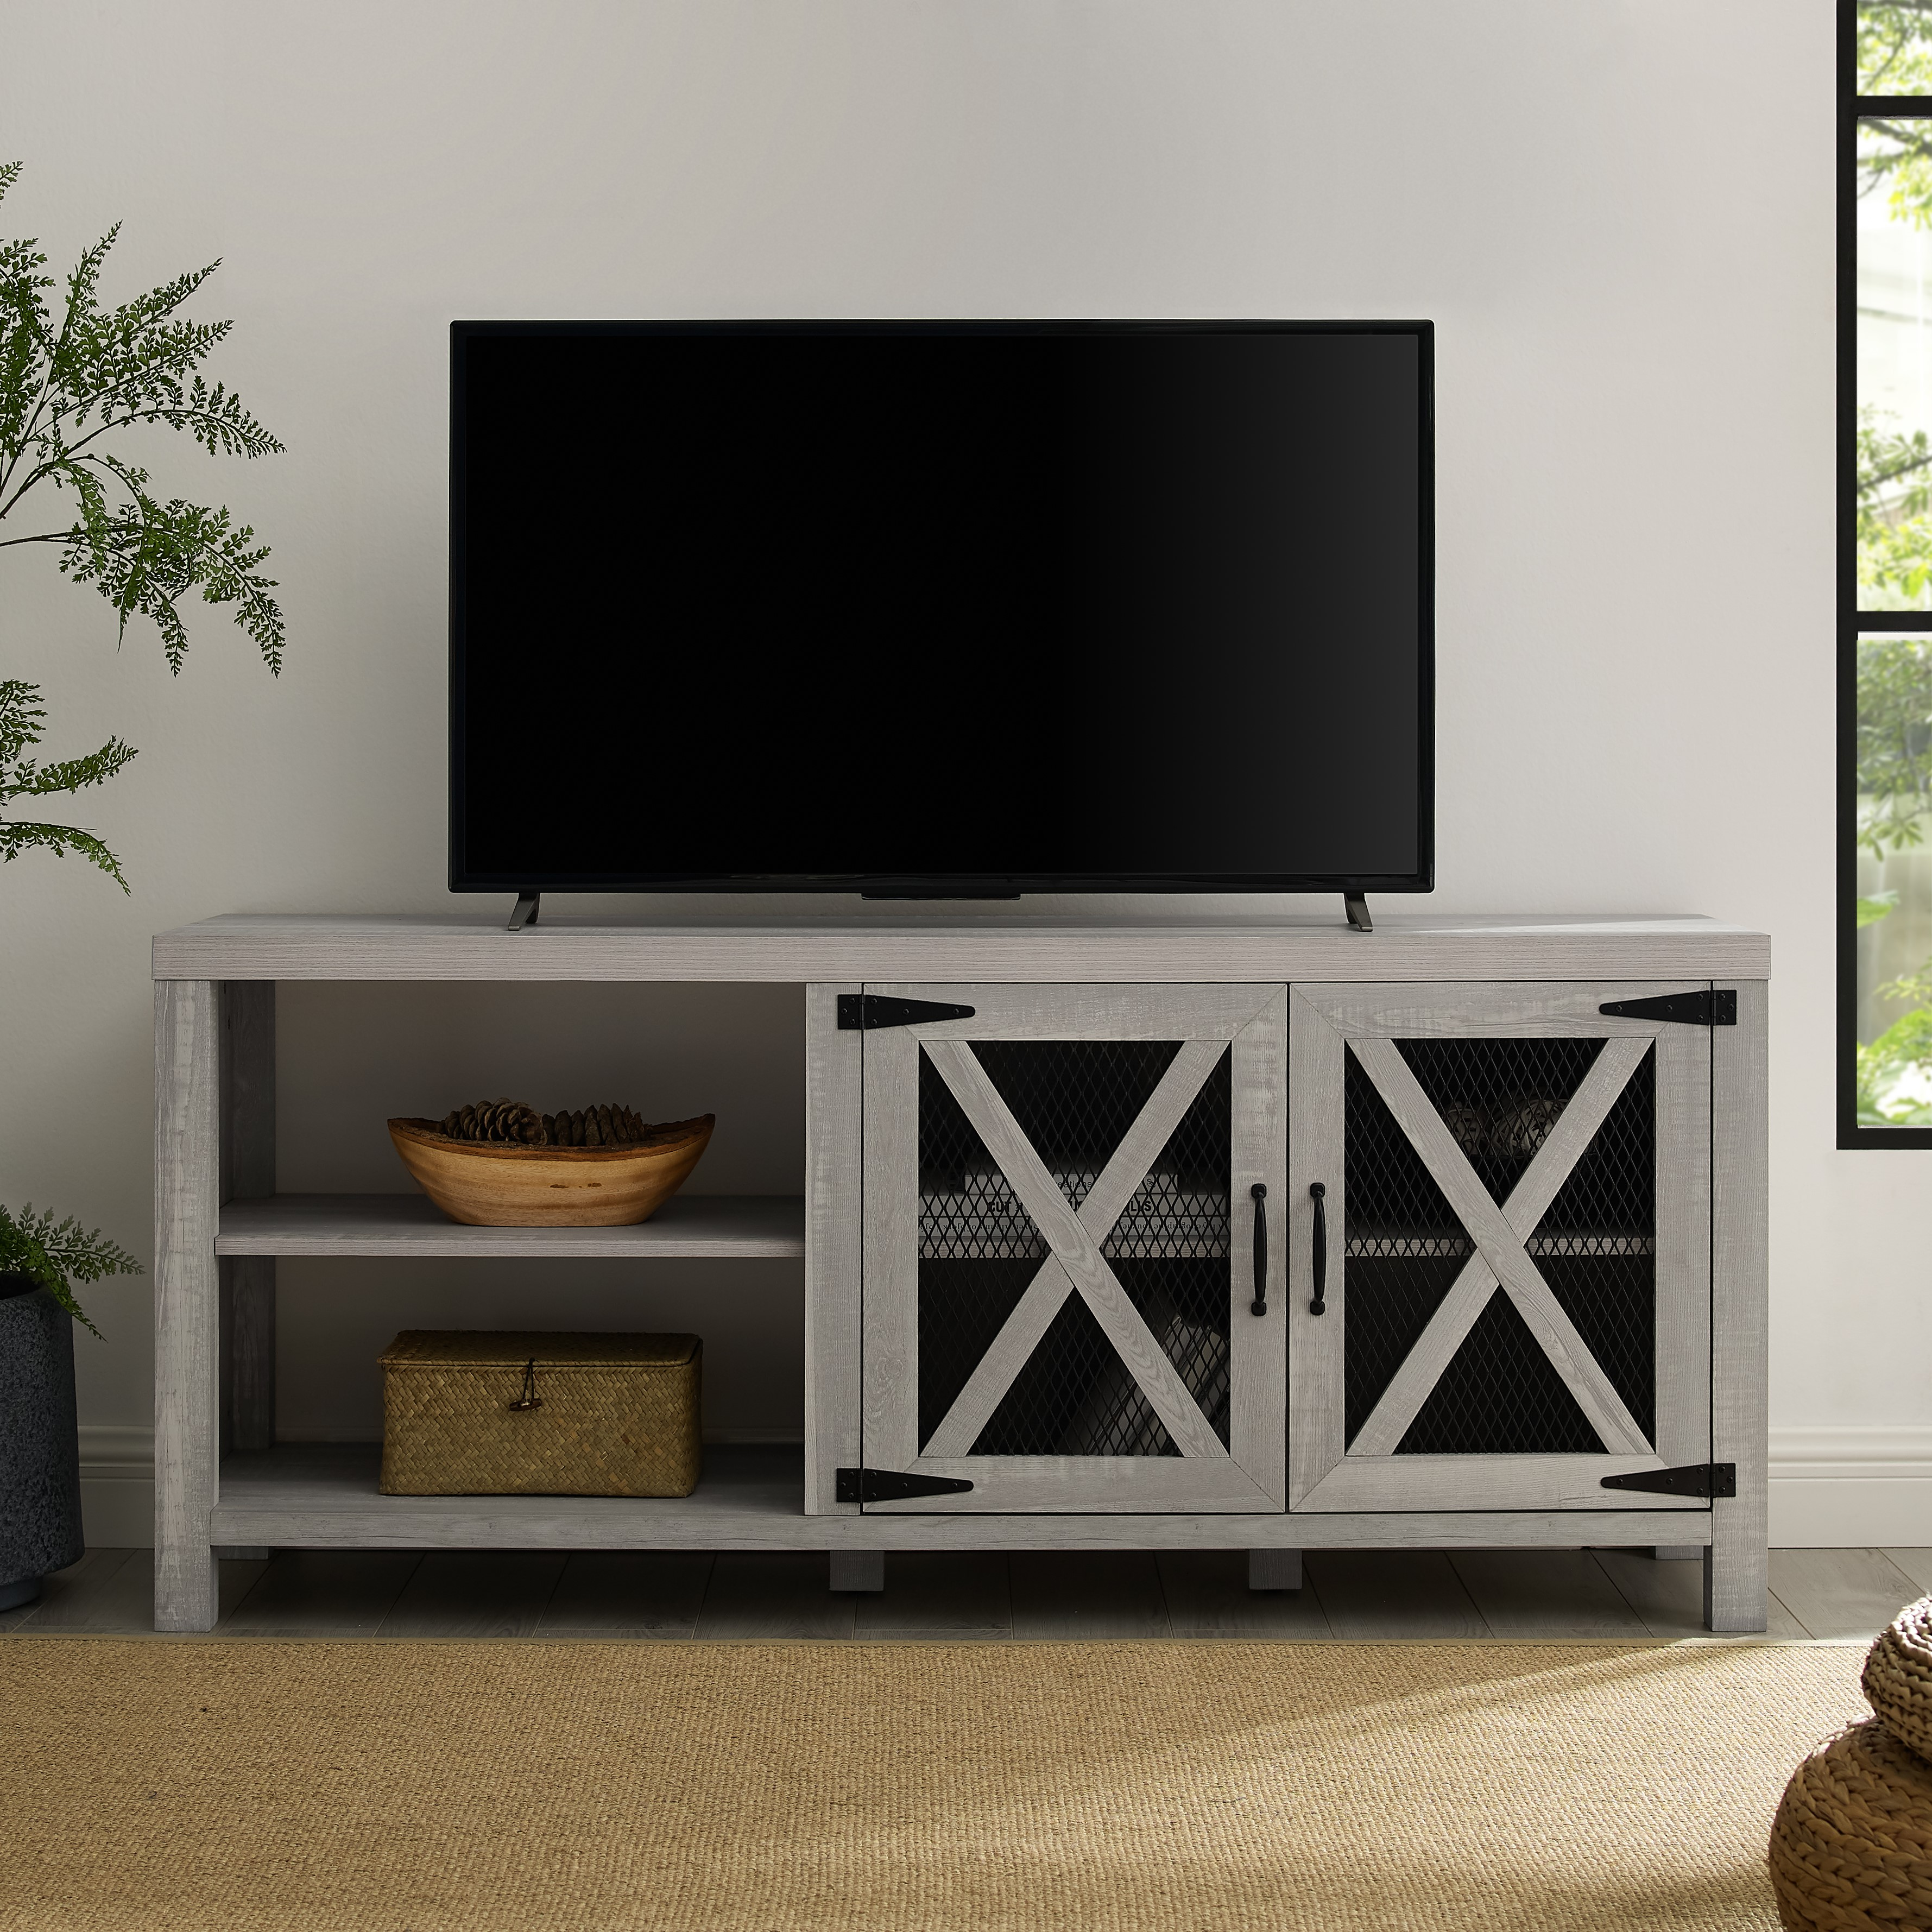 "Manor Park 58"" Industrial Farmhouse TV Stand - Stone Grey"